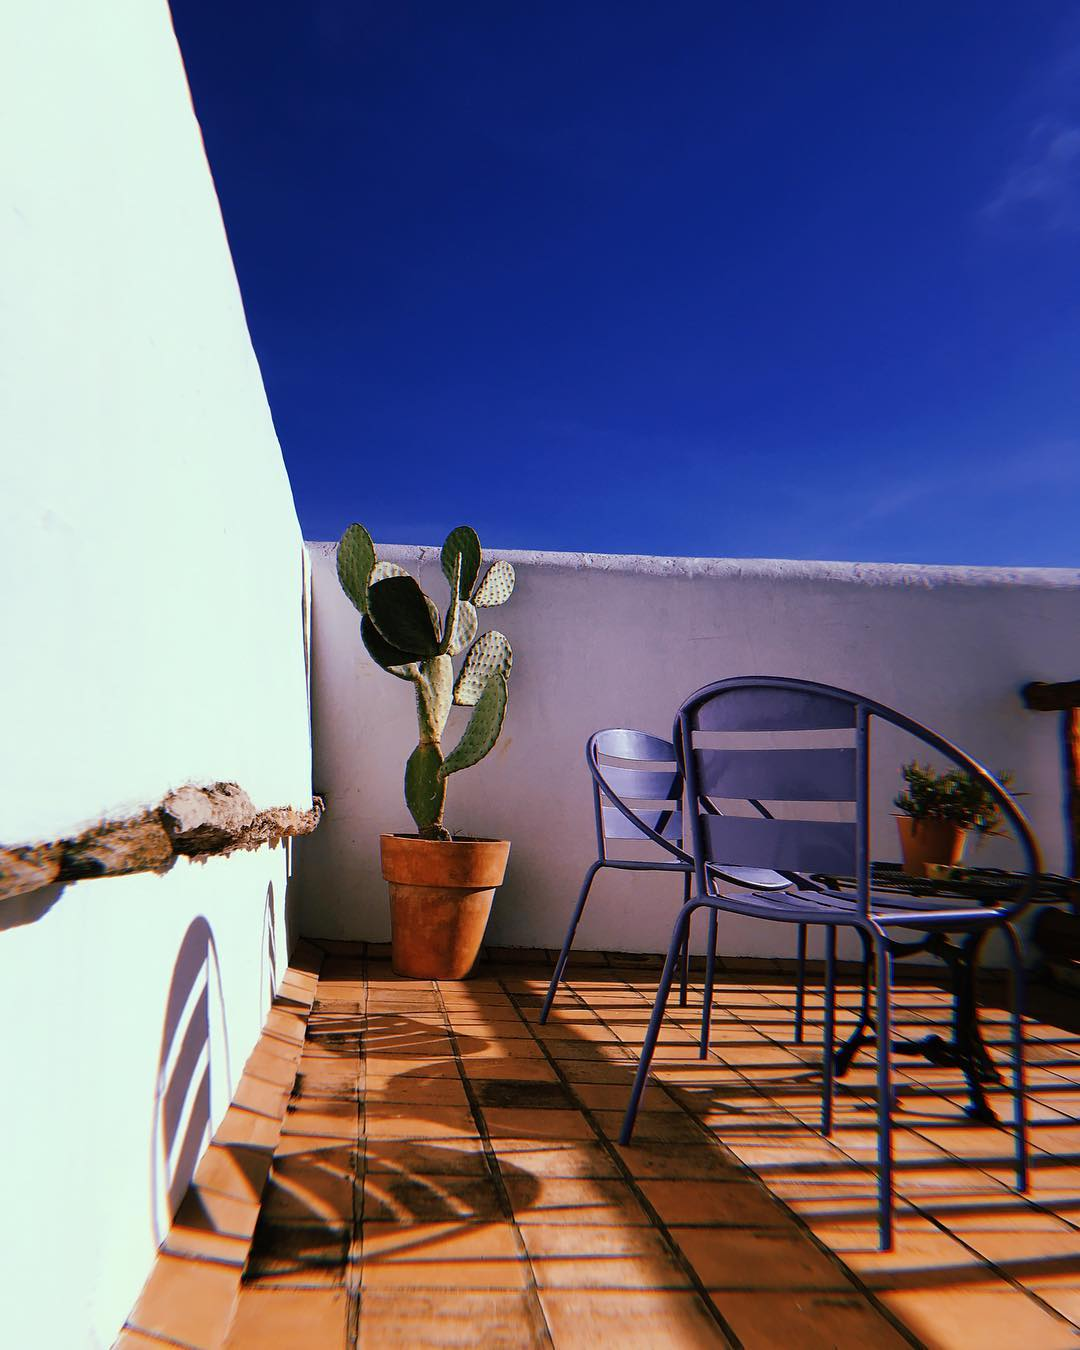 // It doesn't really feel like Xmas // #december #sun #deep #blue #sky #winterweather #ibizastyle #itsbetterinibiza #lascicadasibiza #welove #winterseason #islandlife #ibiza #vintagechairs #cactus